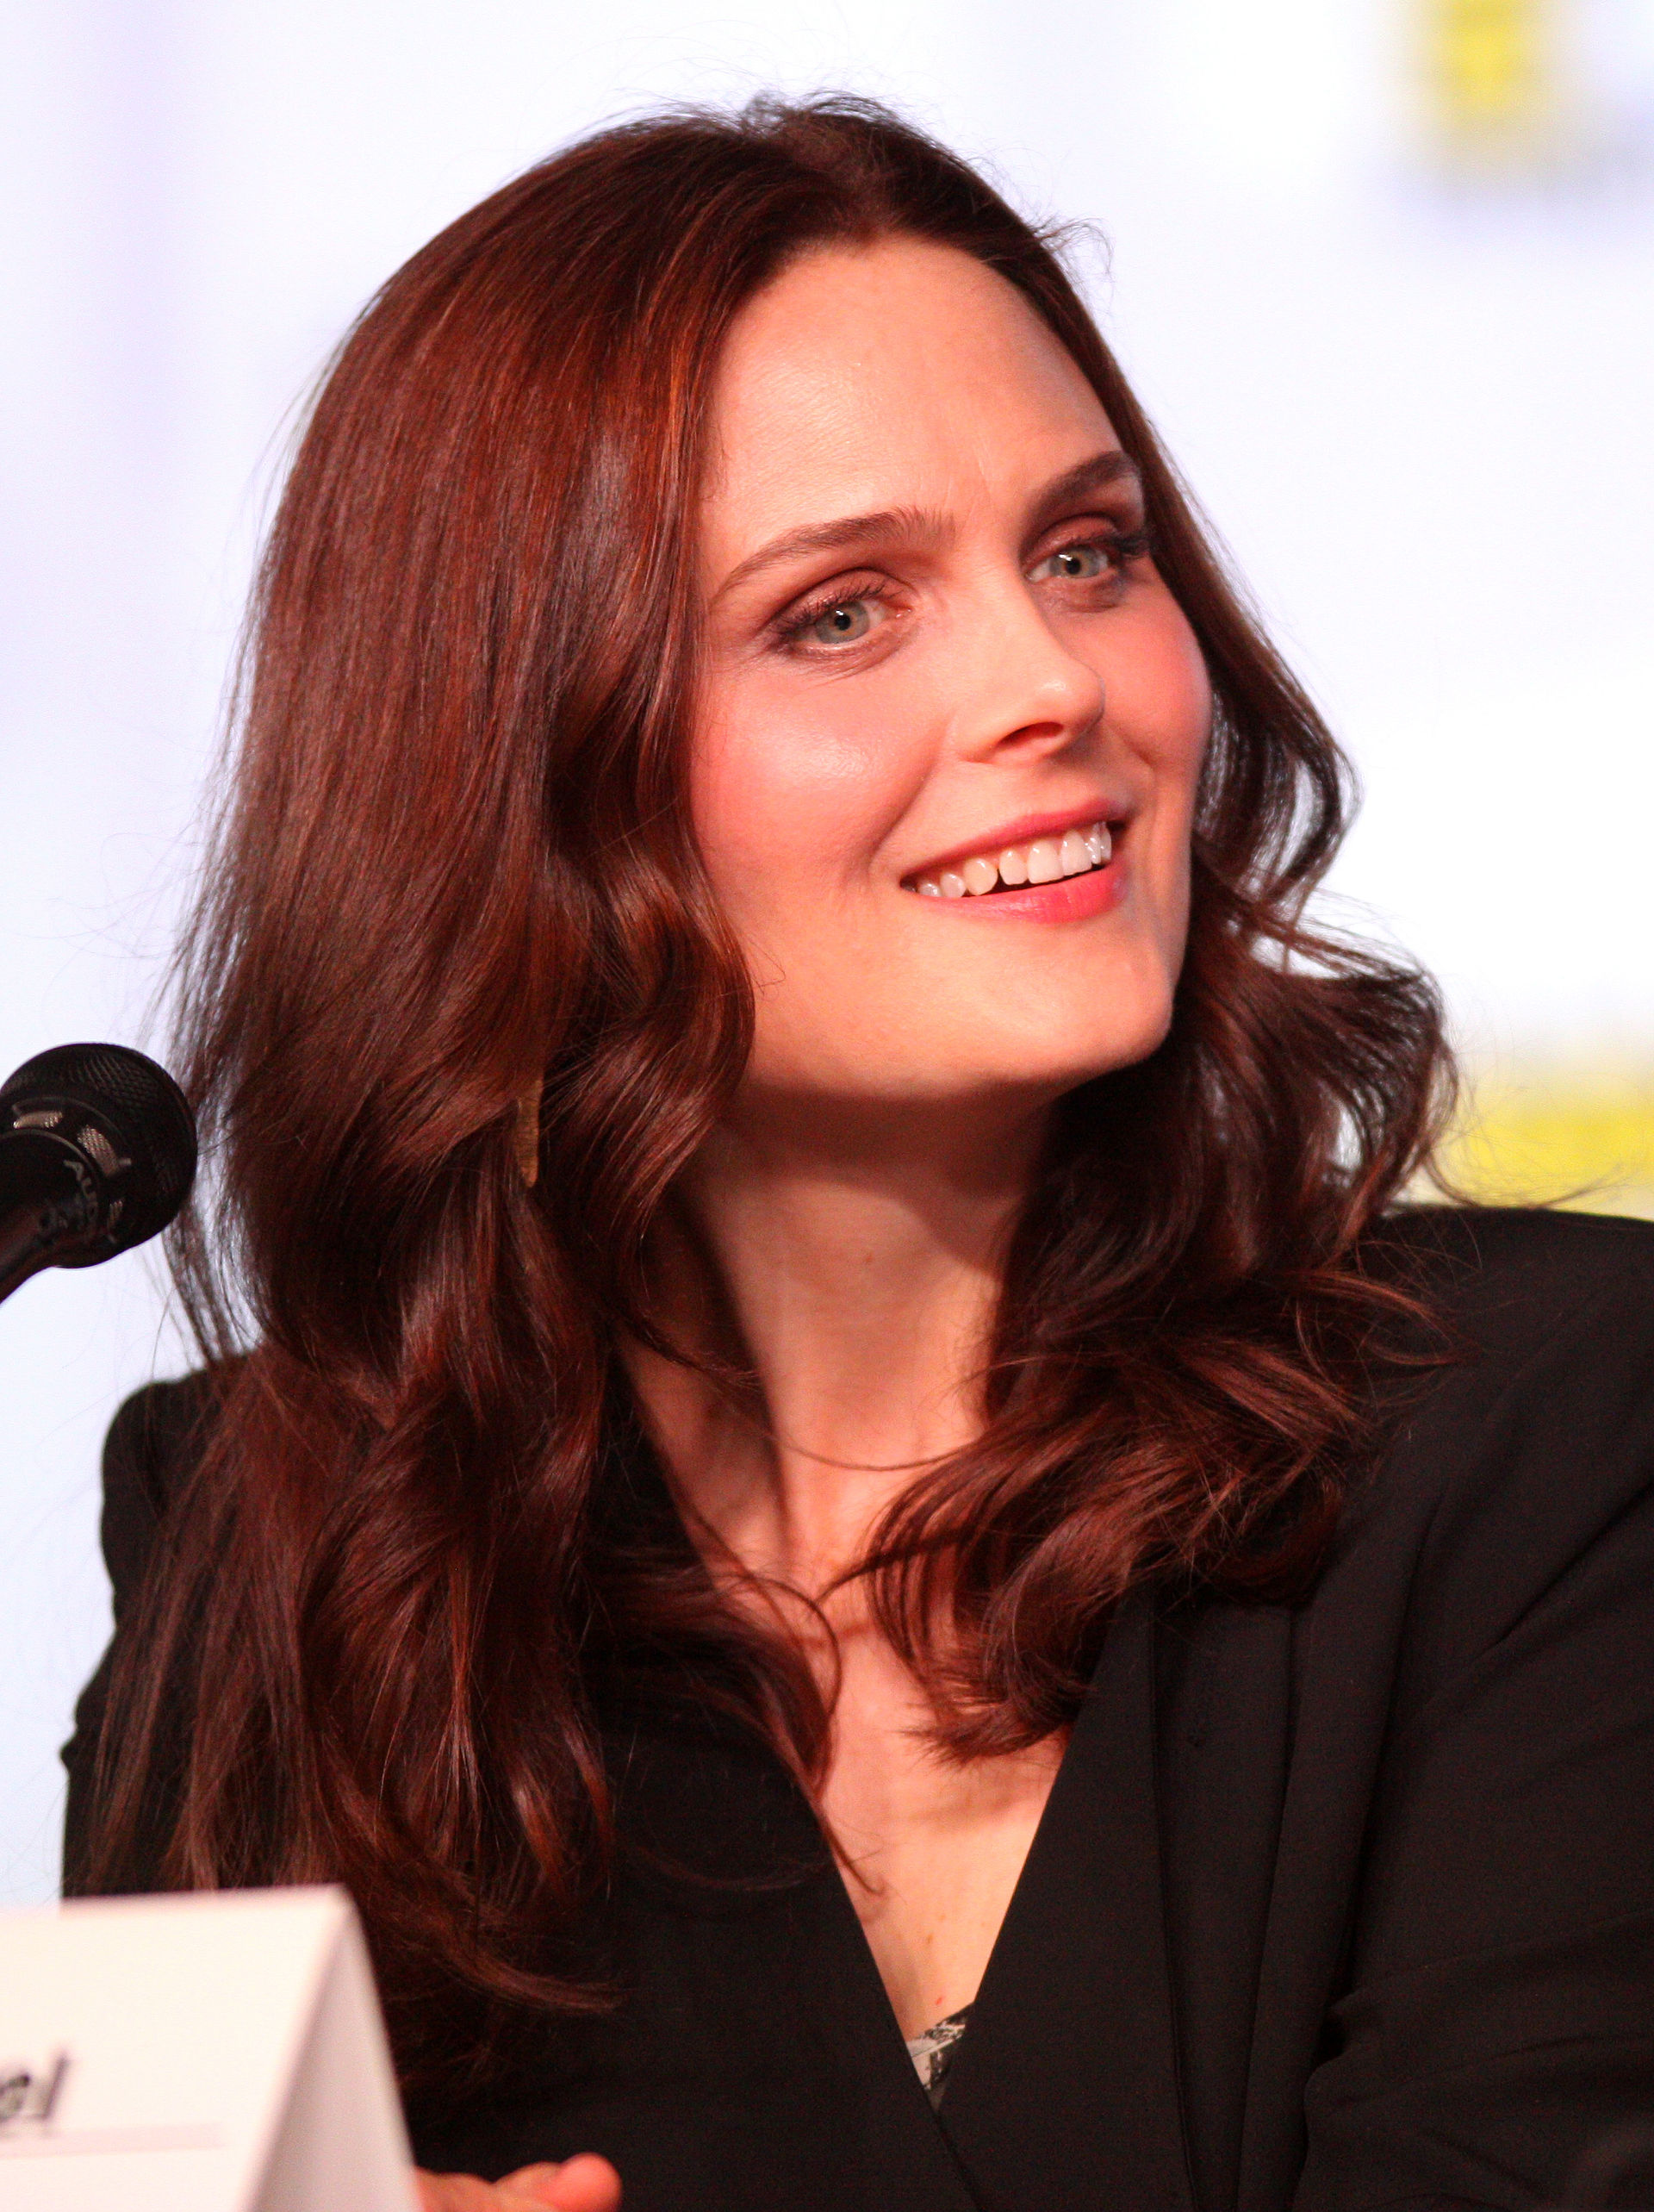 Emily Deschanel - Wikipedia